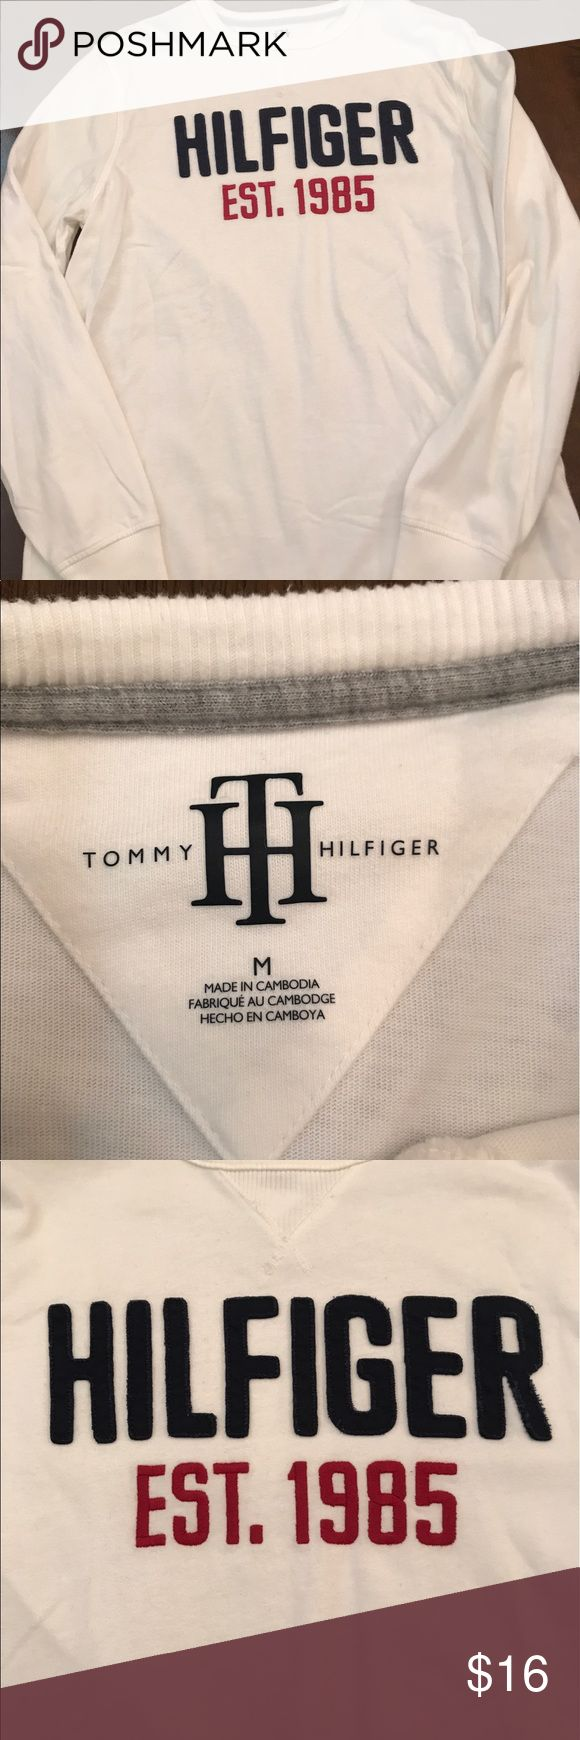 Tommy Hilfiger long Sleeve tshirt Great condition! Check out all the photos. From 2015 Tommy Hilfiger Shirts Tees - Long Sleeve